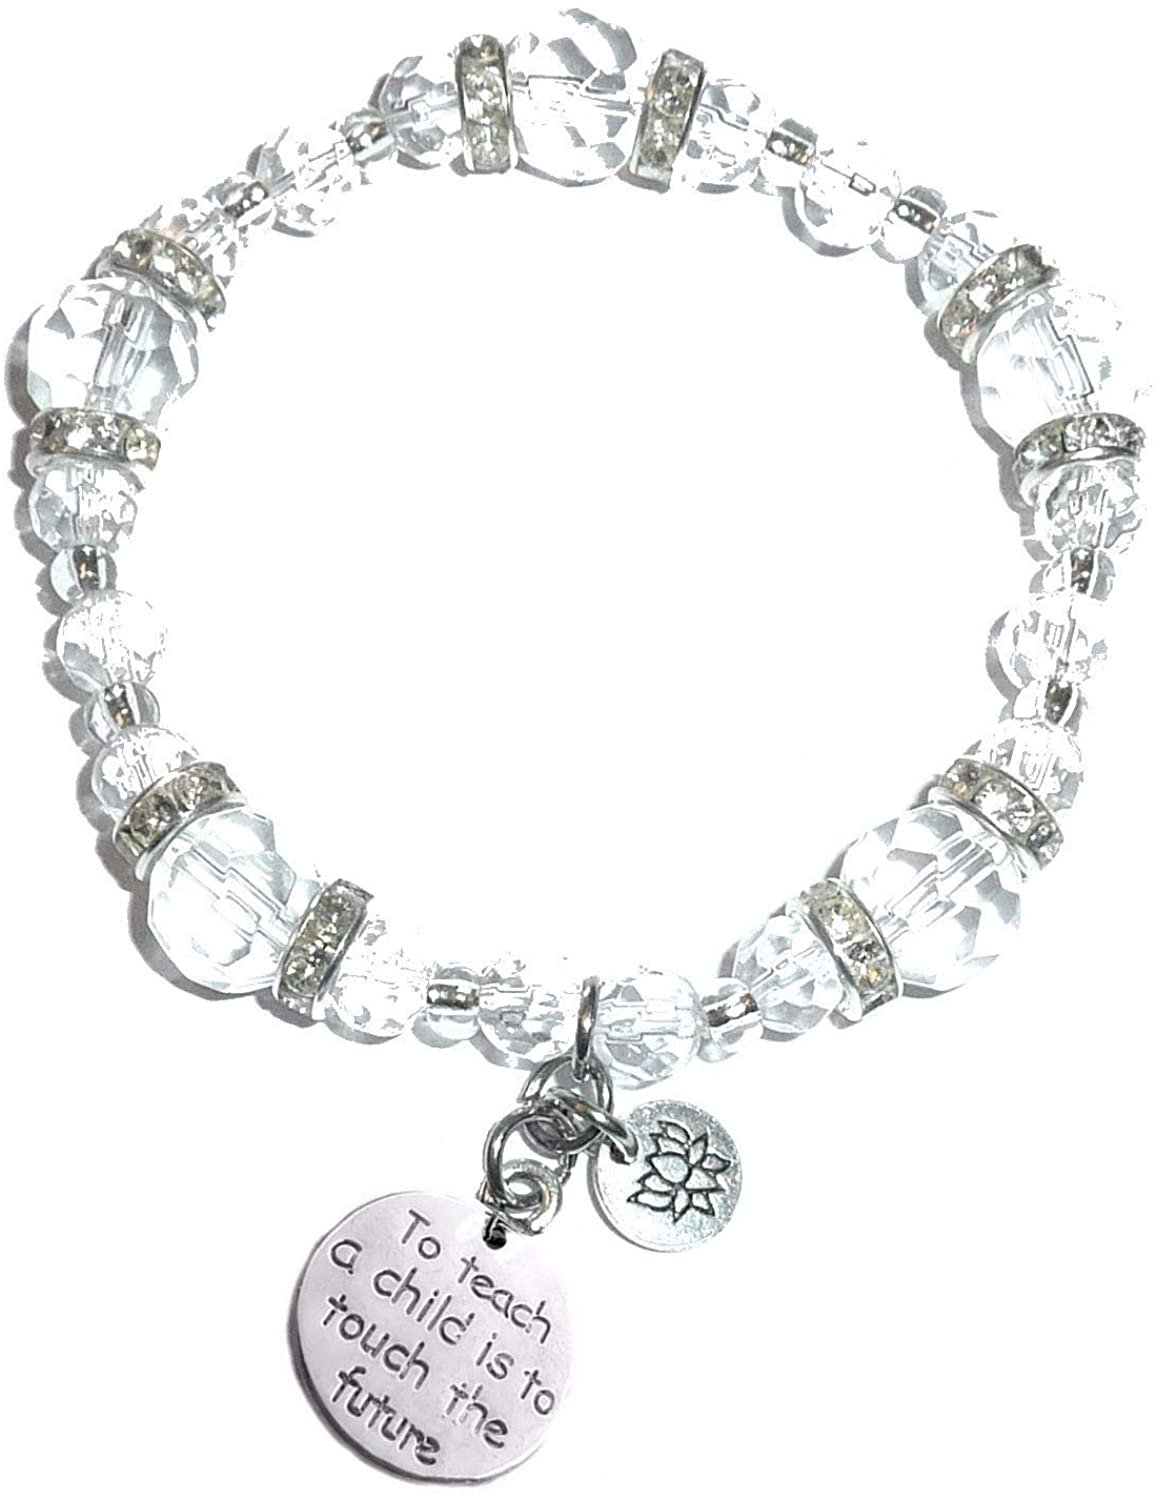 Hidden Hollow Beads Crystal Stretch Charm Bracelet, Women's Message Dangle, Comes Packaged In A Beautiful Gift Bag